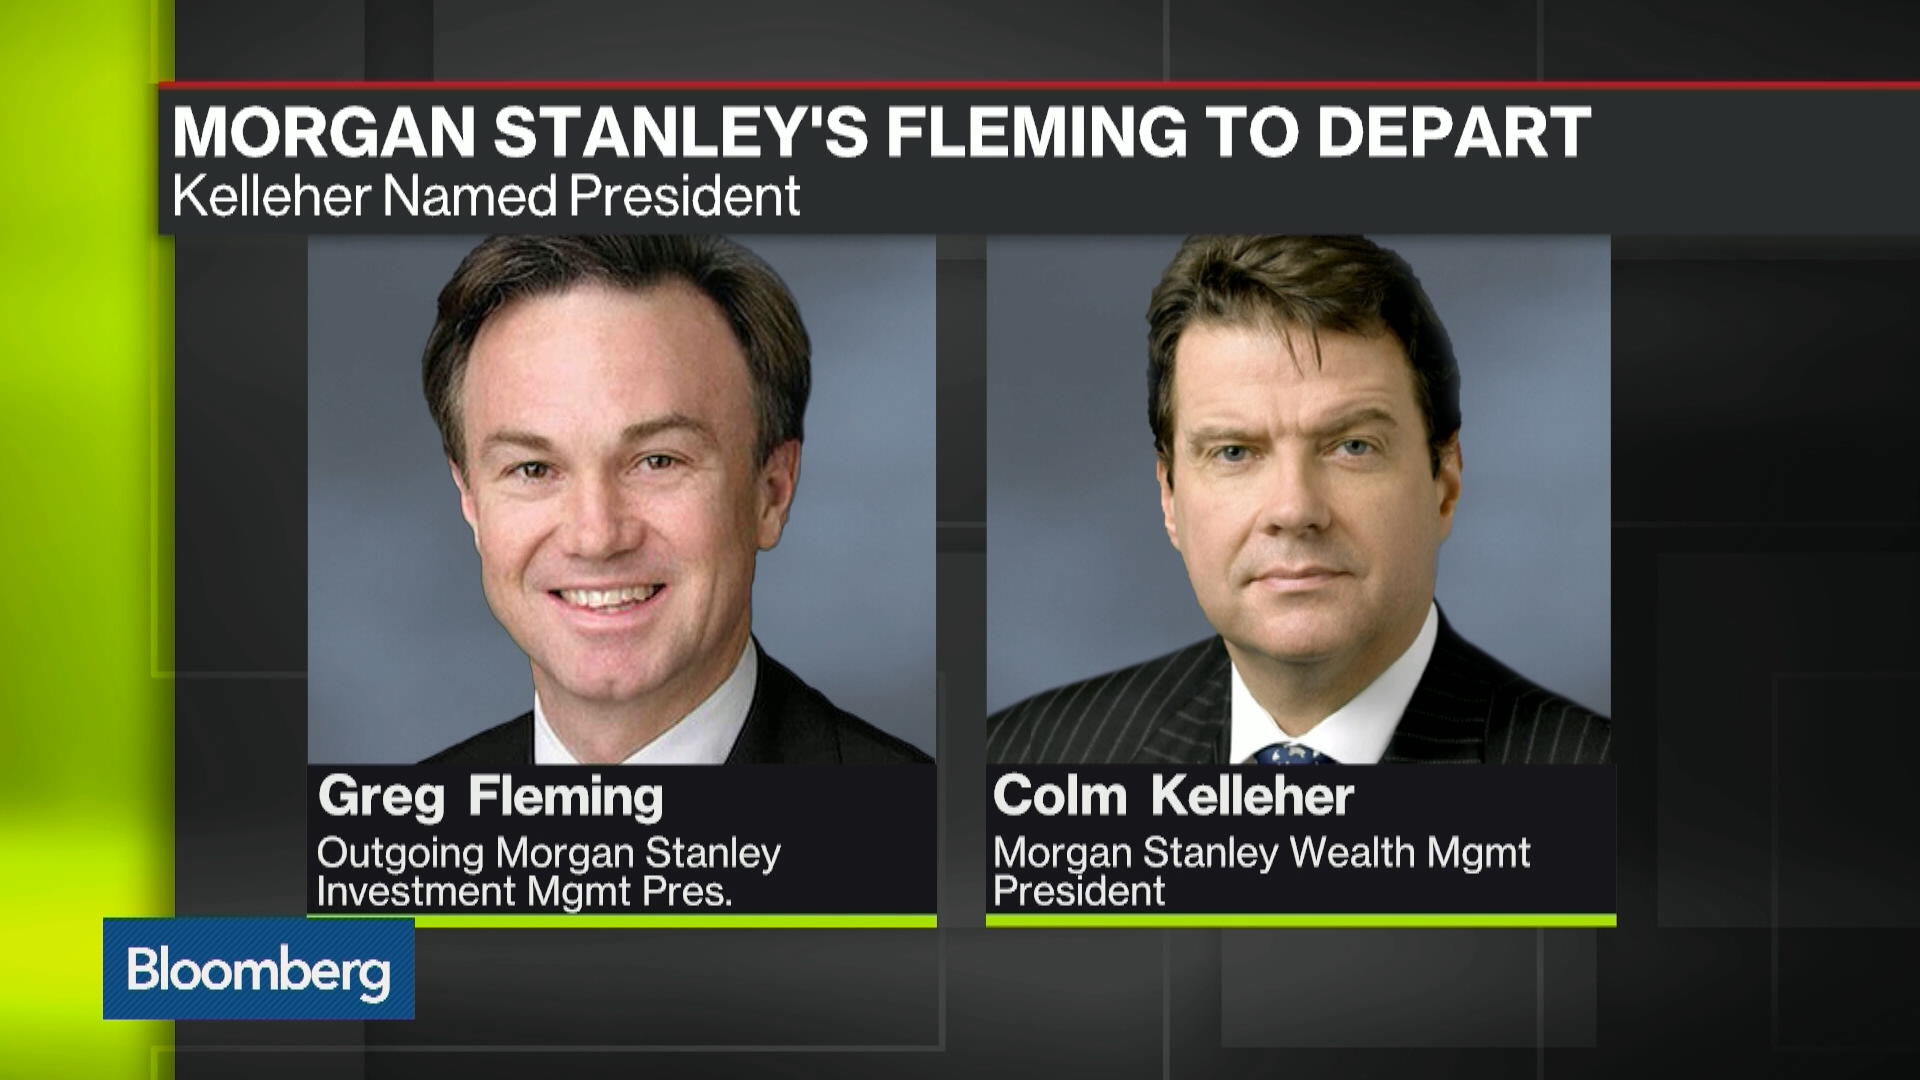 Executive Shuffle at Morgan Stanley: Fleming to Leave Firm